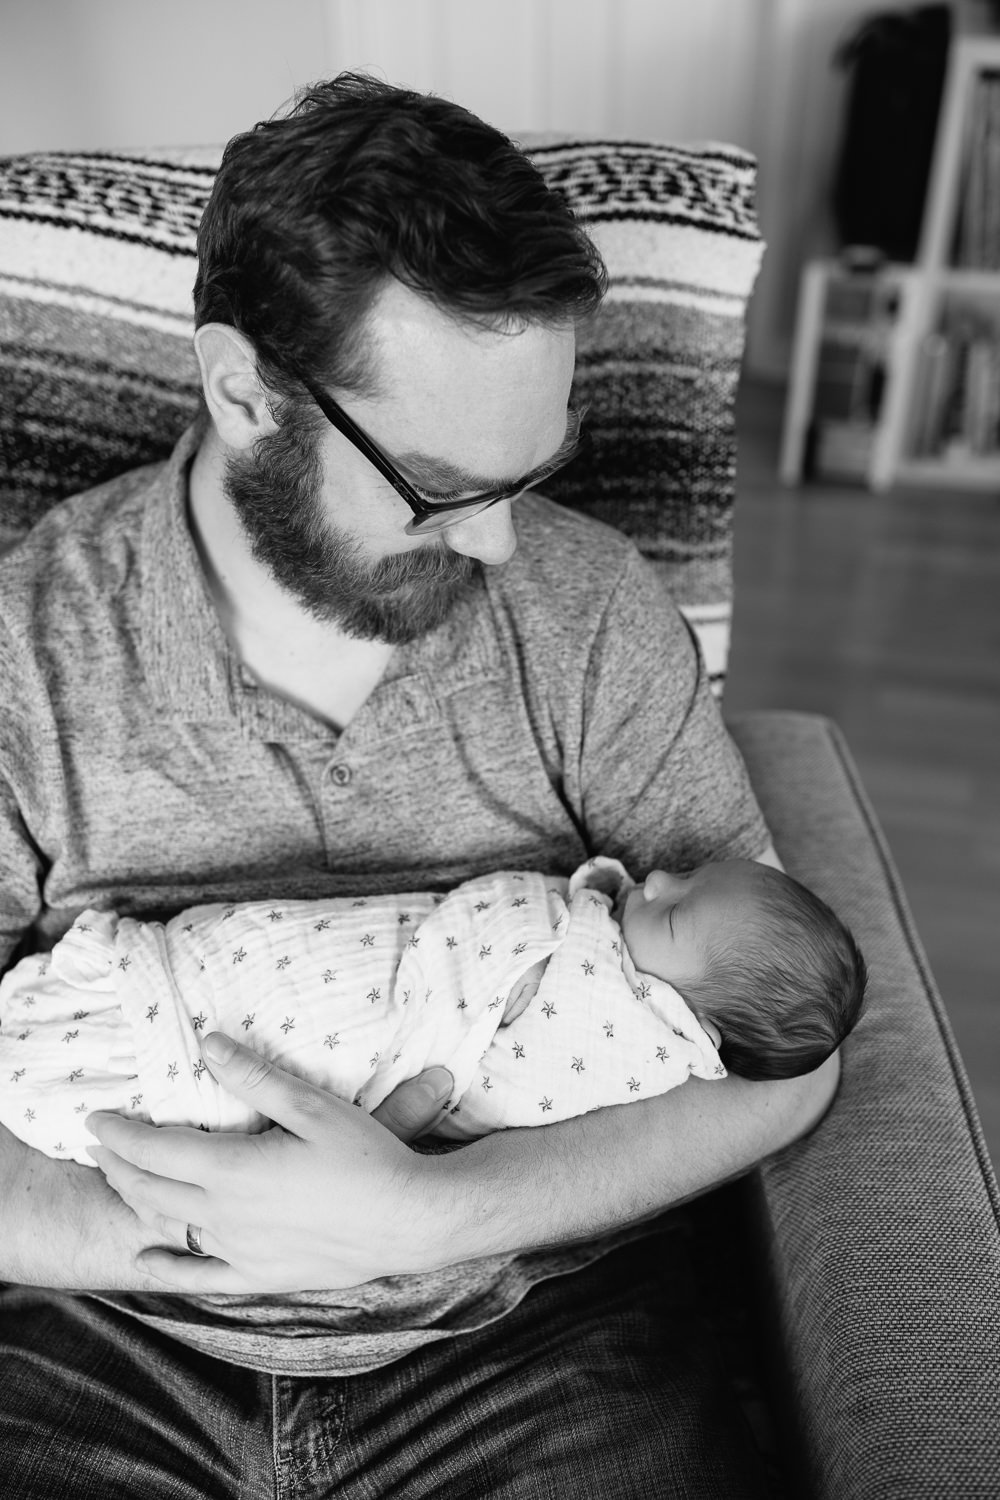 new father sitting in chair holding sleeping 2 week old baby boy in swaddle with dark hair -Newmarket In-Home Photos